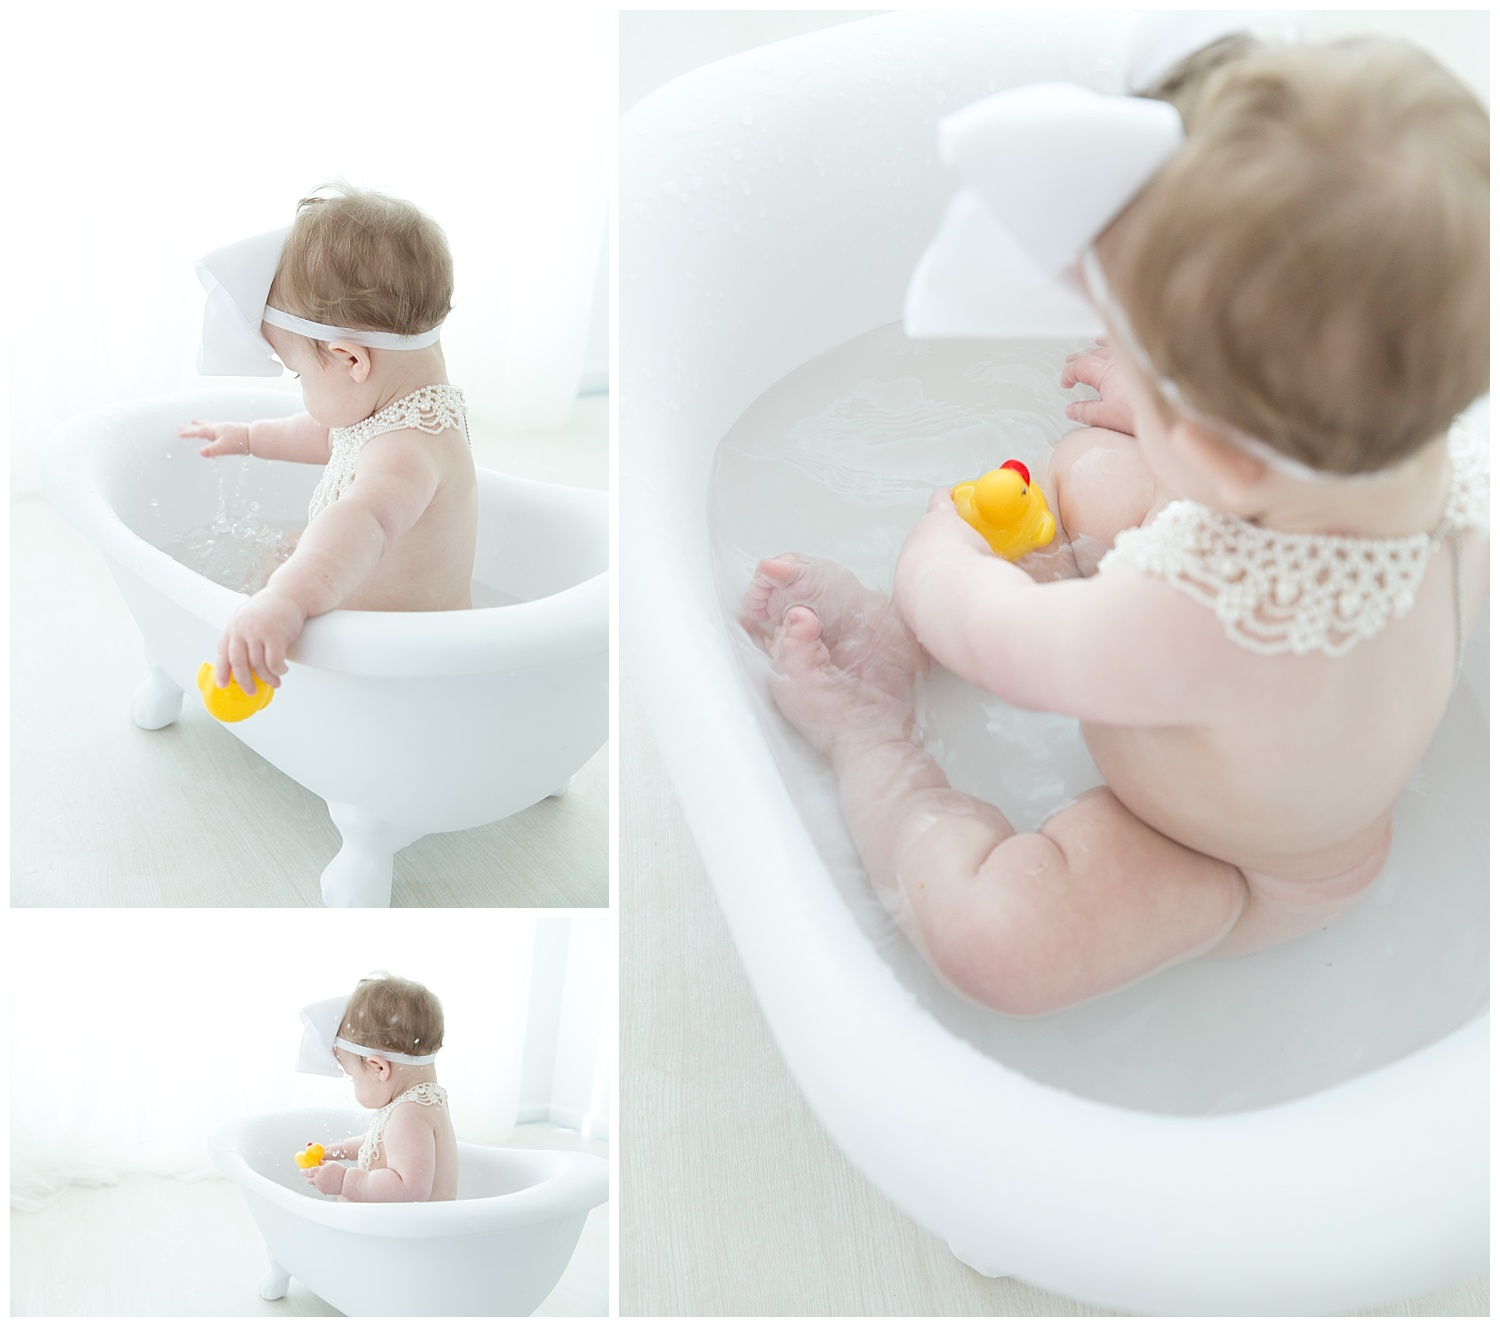 baby girl playing in the tub with her rubber duckies in burlington nj